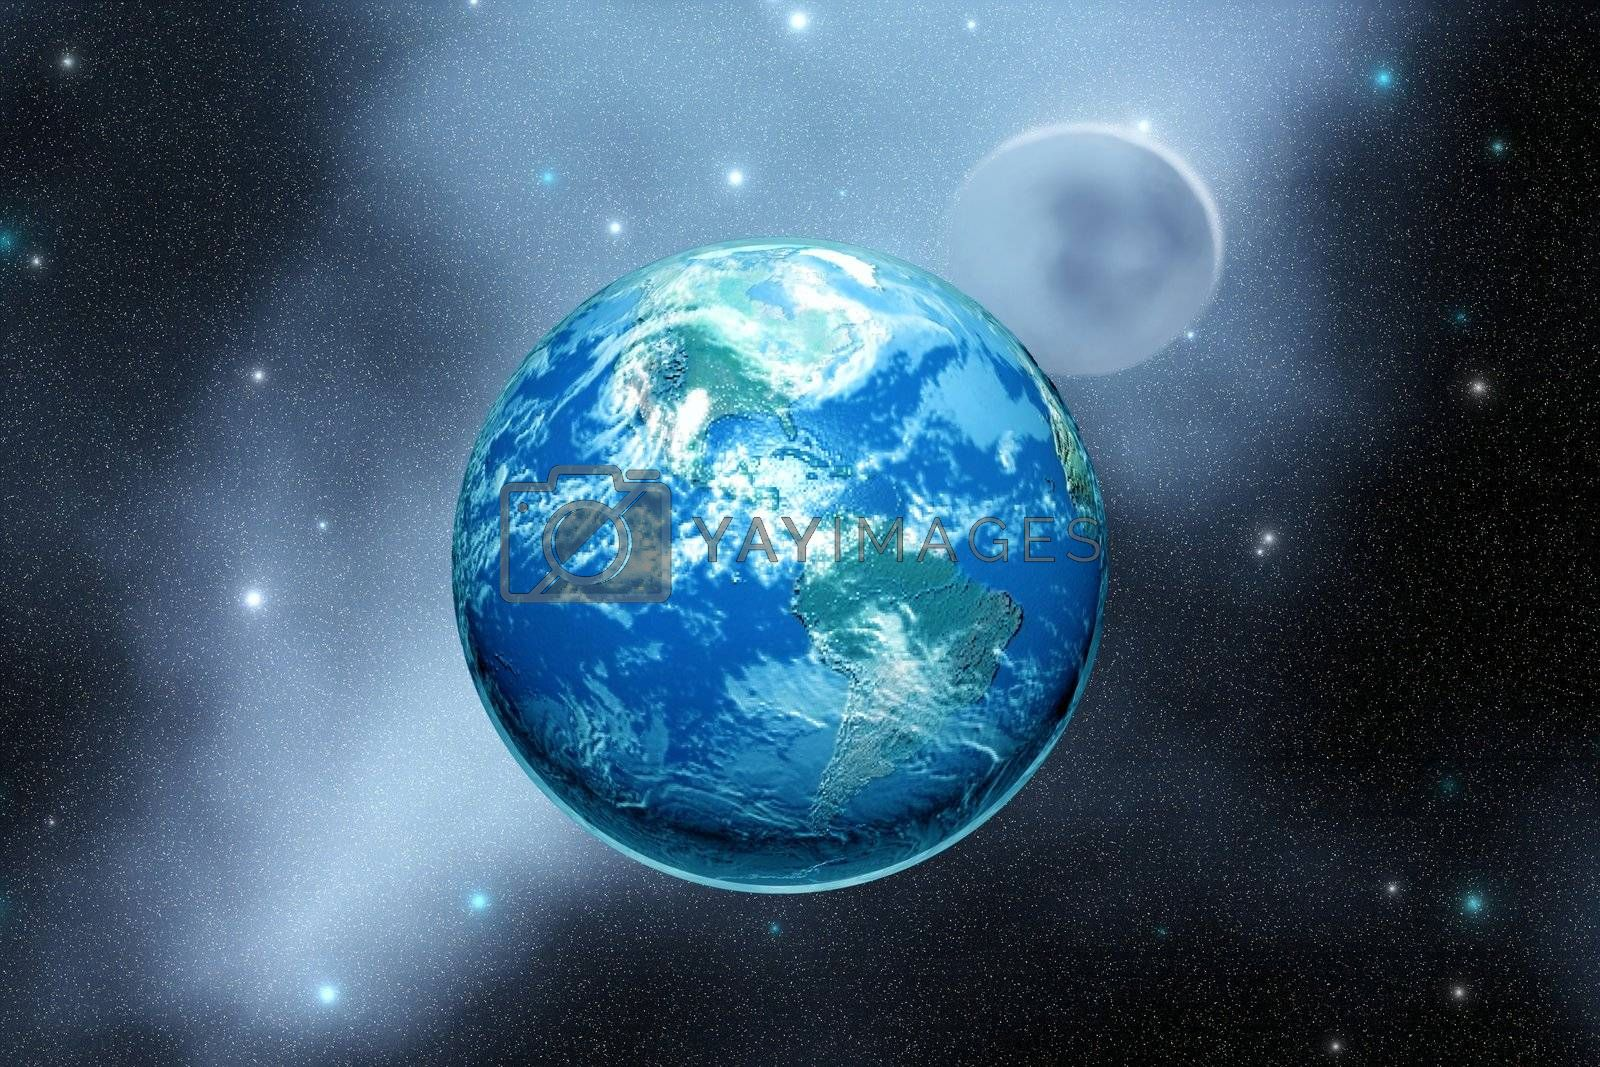 The Earth and its moon.